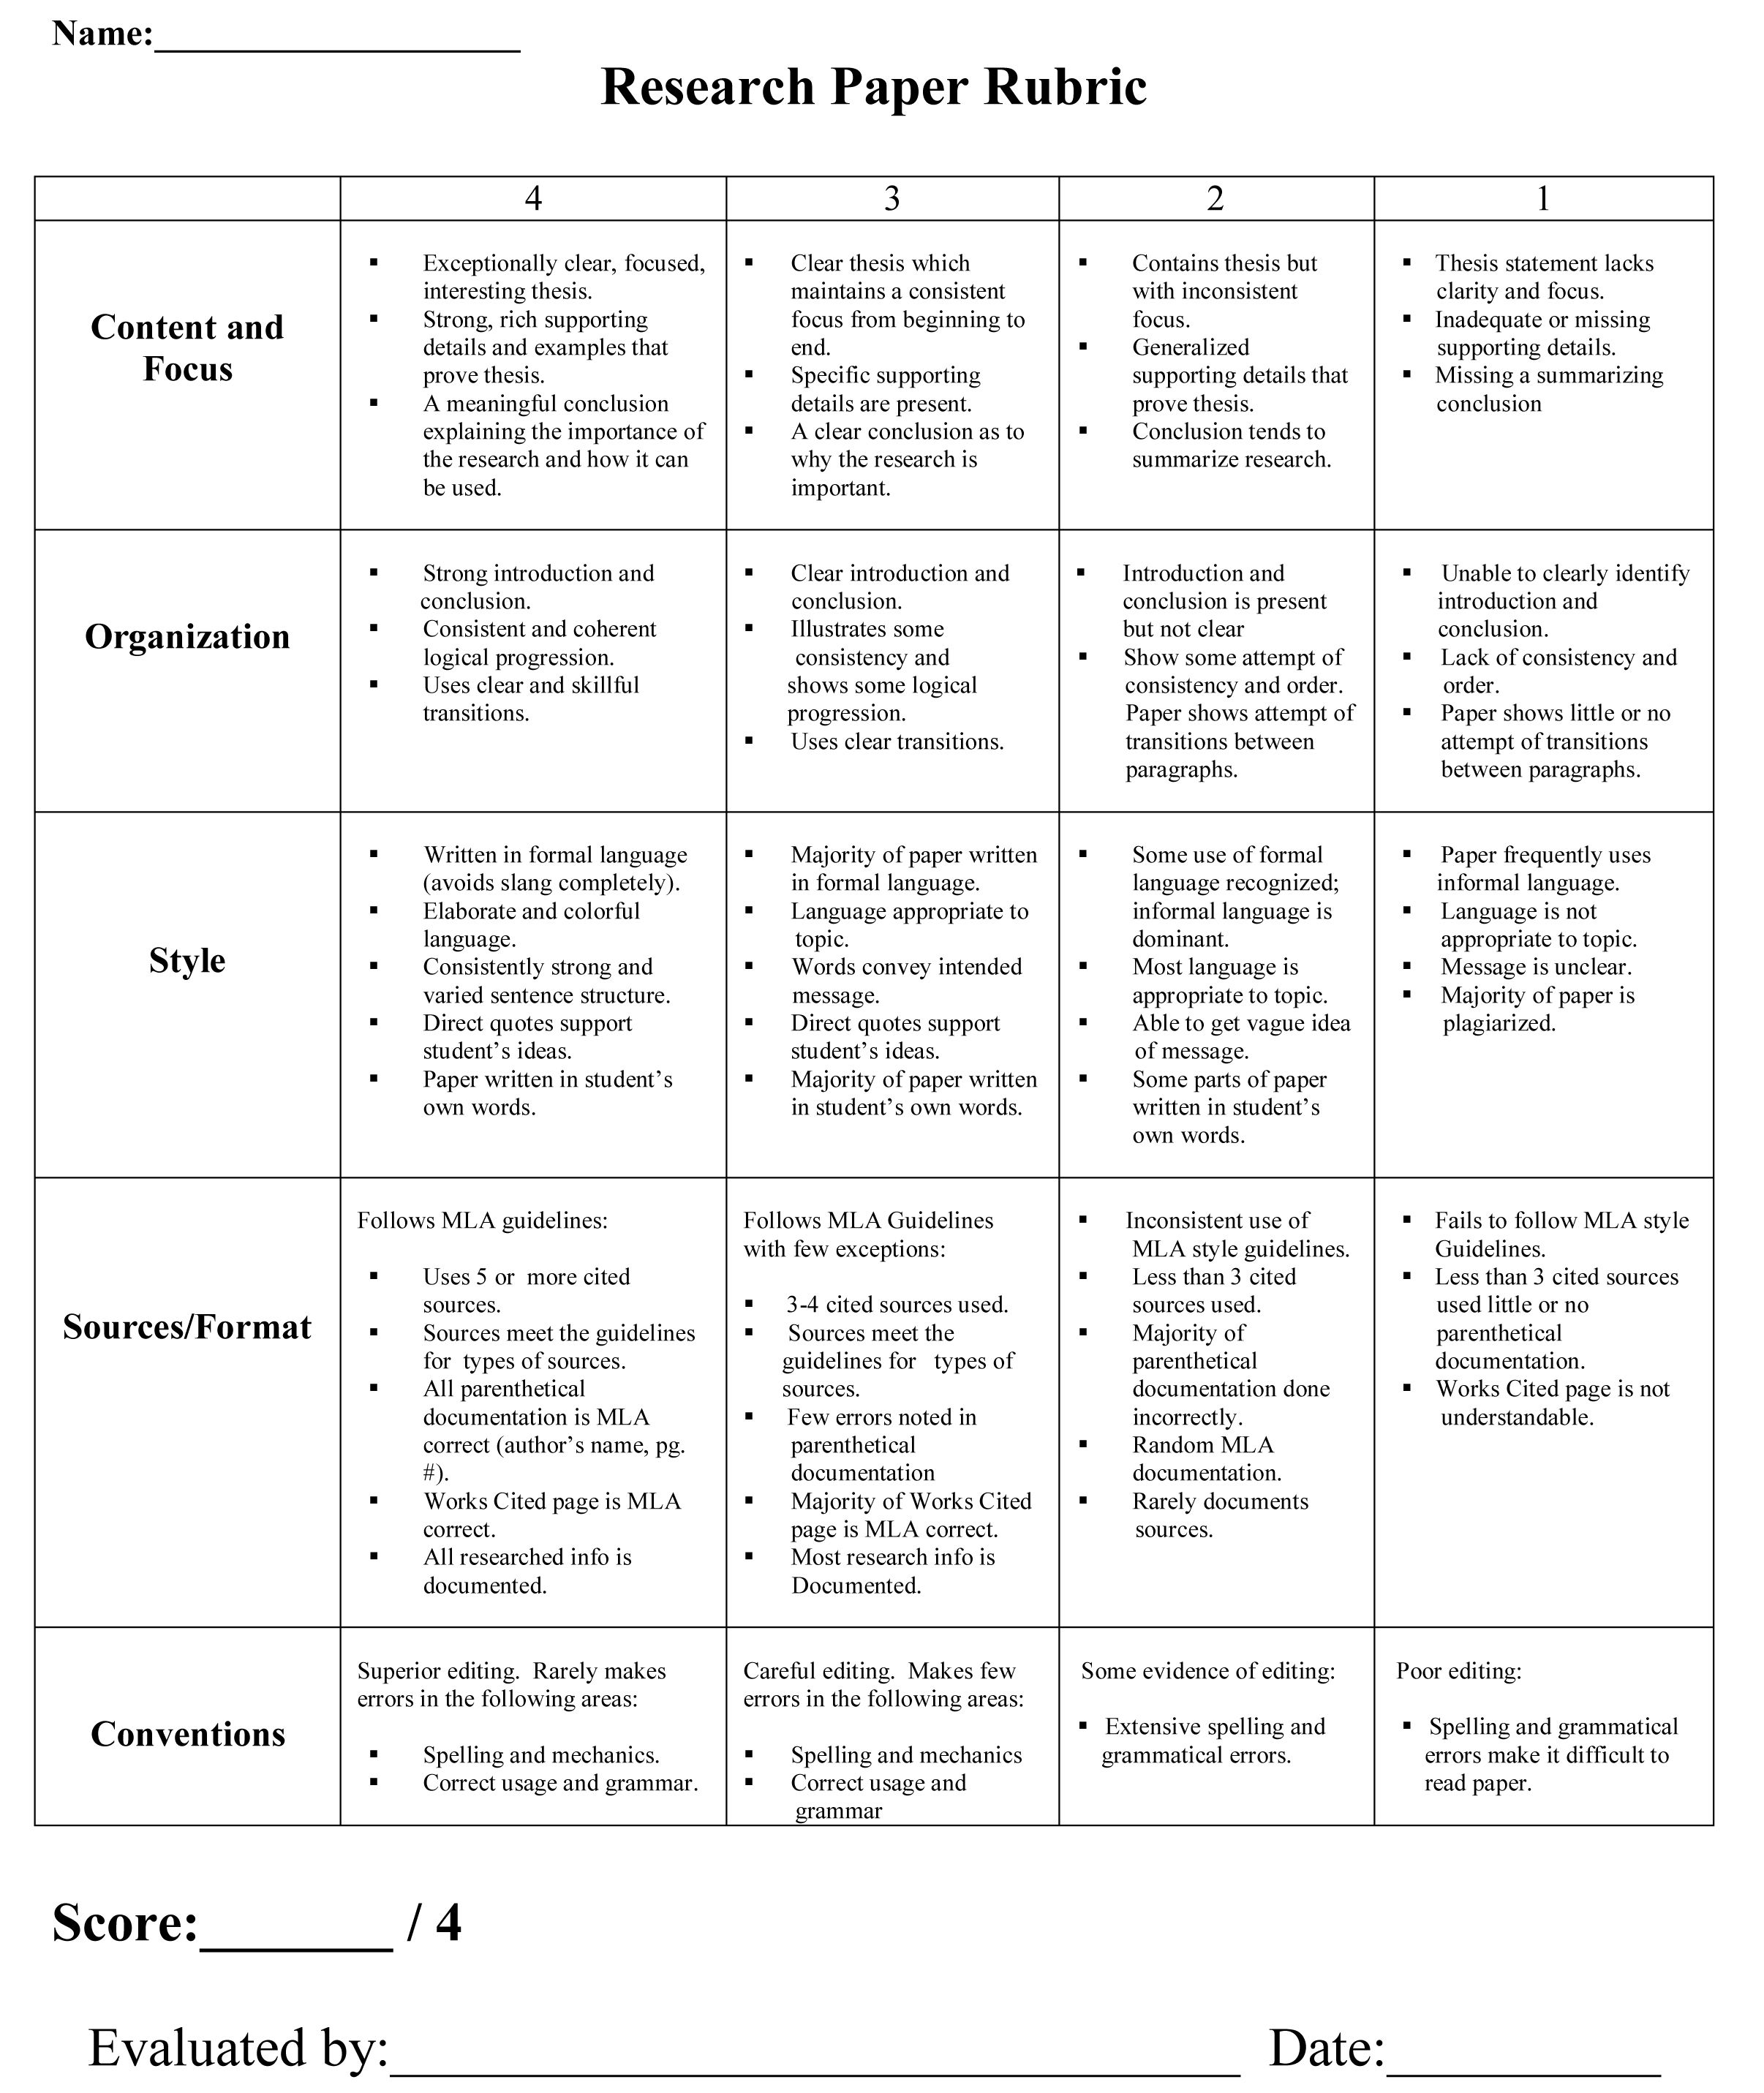 004 Research Paper Rubric Middle School Astounding Science History Full